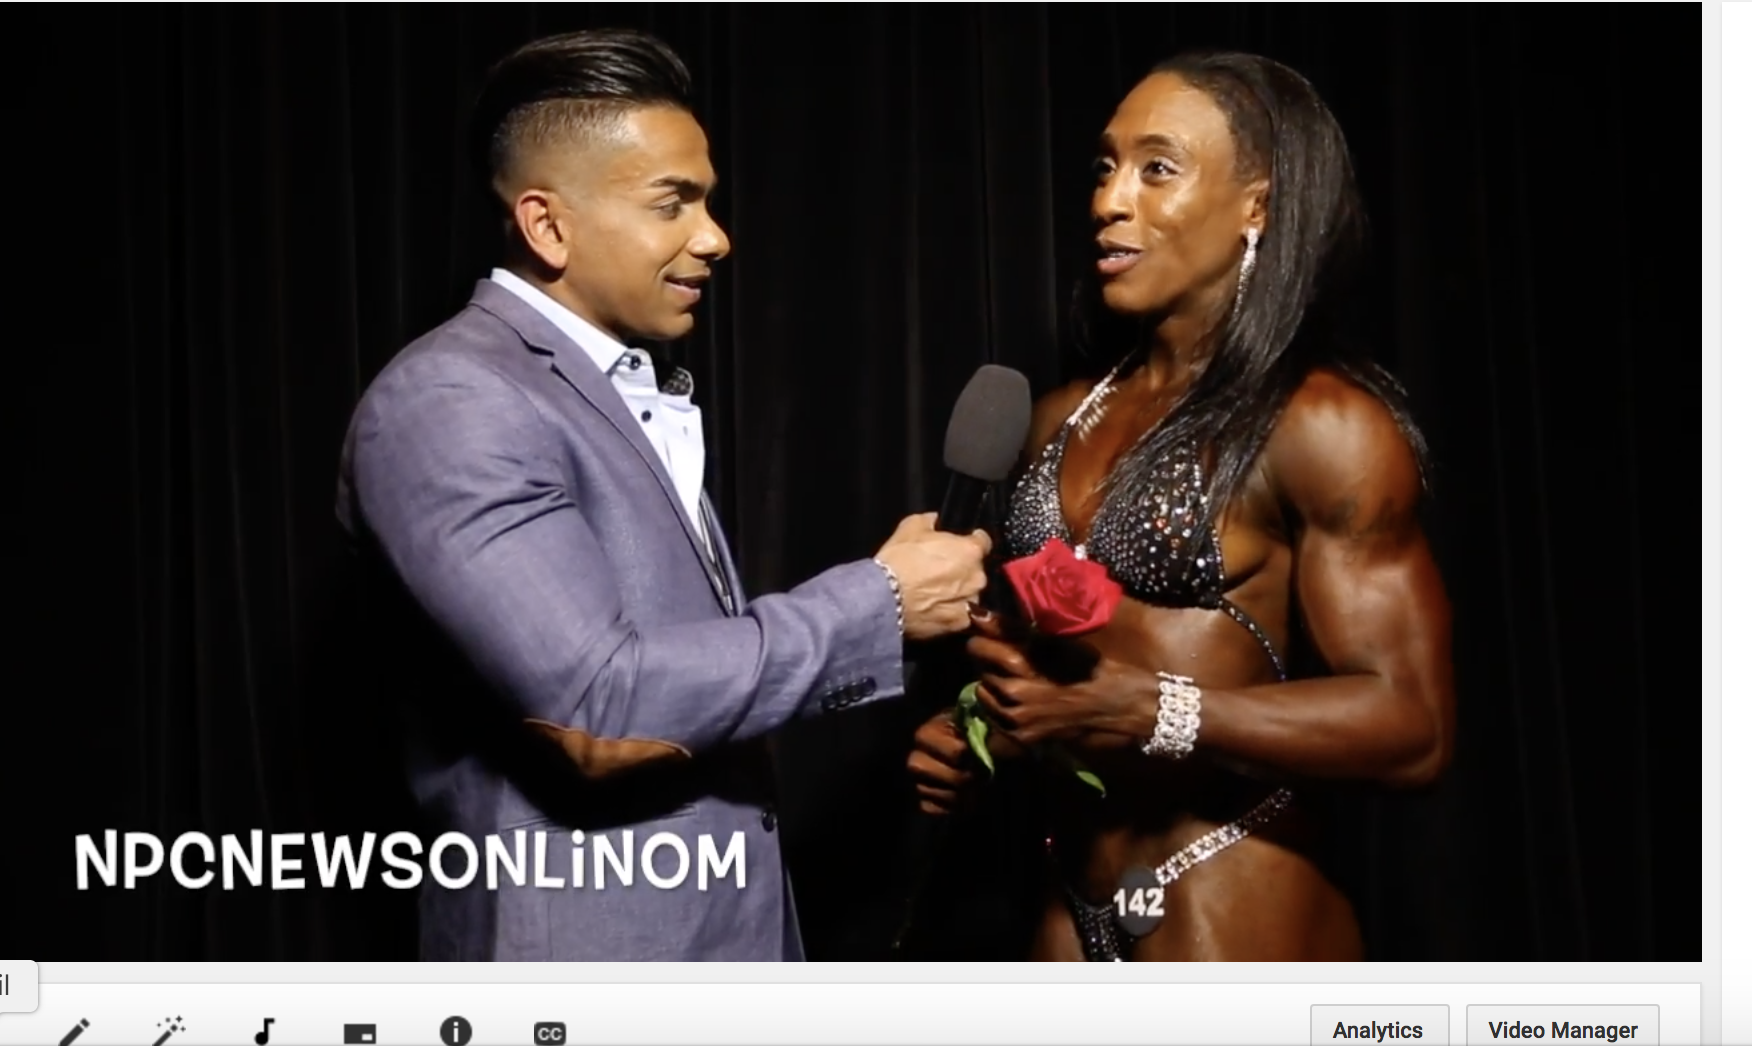 2017 NPC USA Women's Physique Overall Winner Courtney Rheams Interviewed By IFBB Pro Freddy Mac